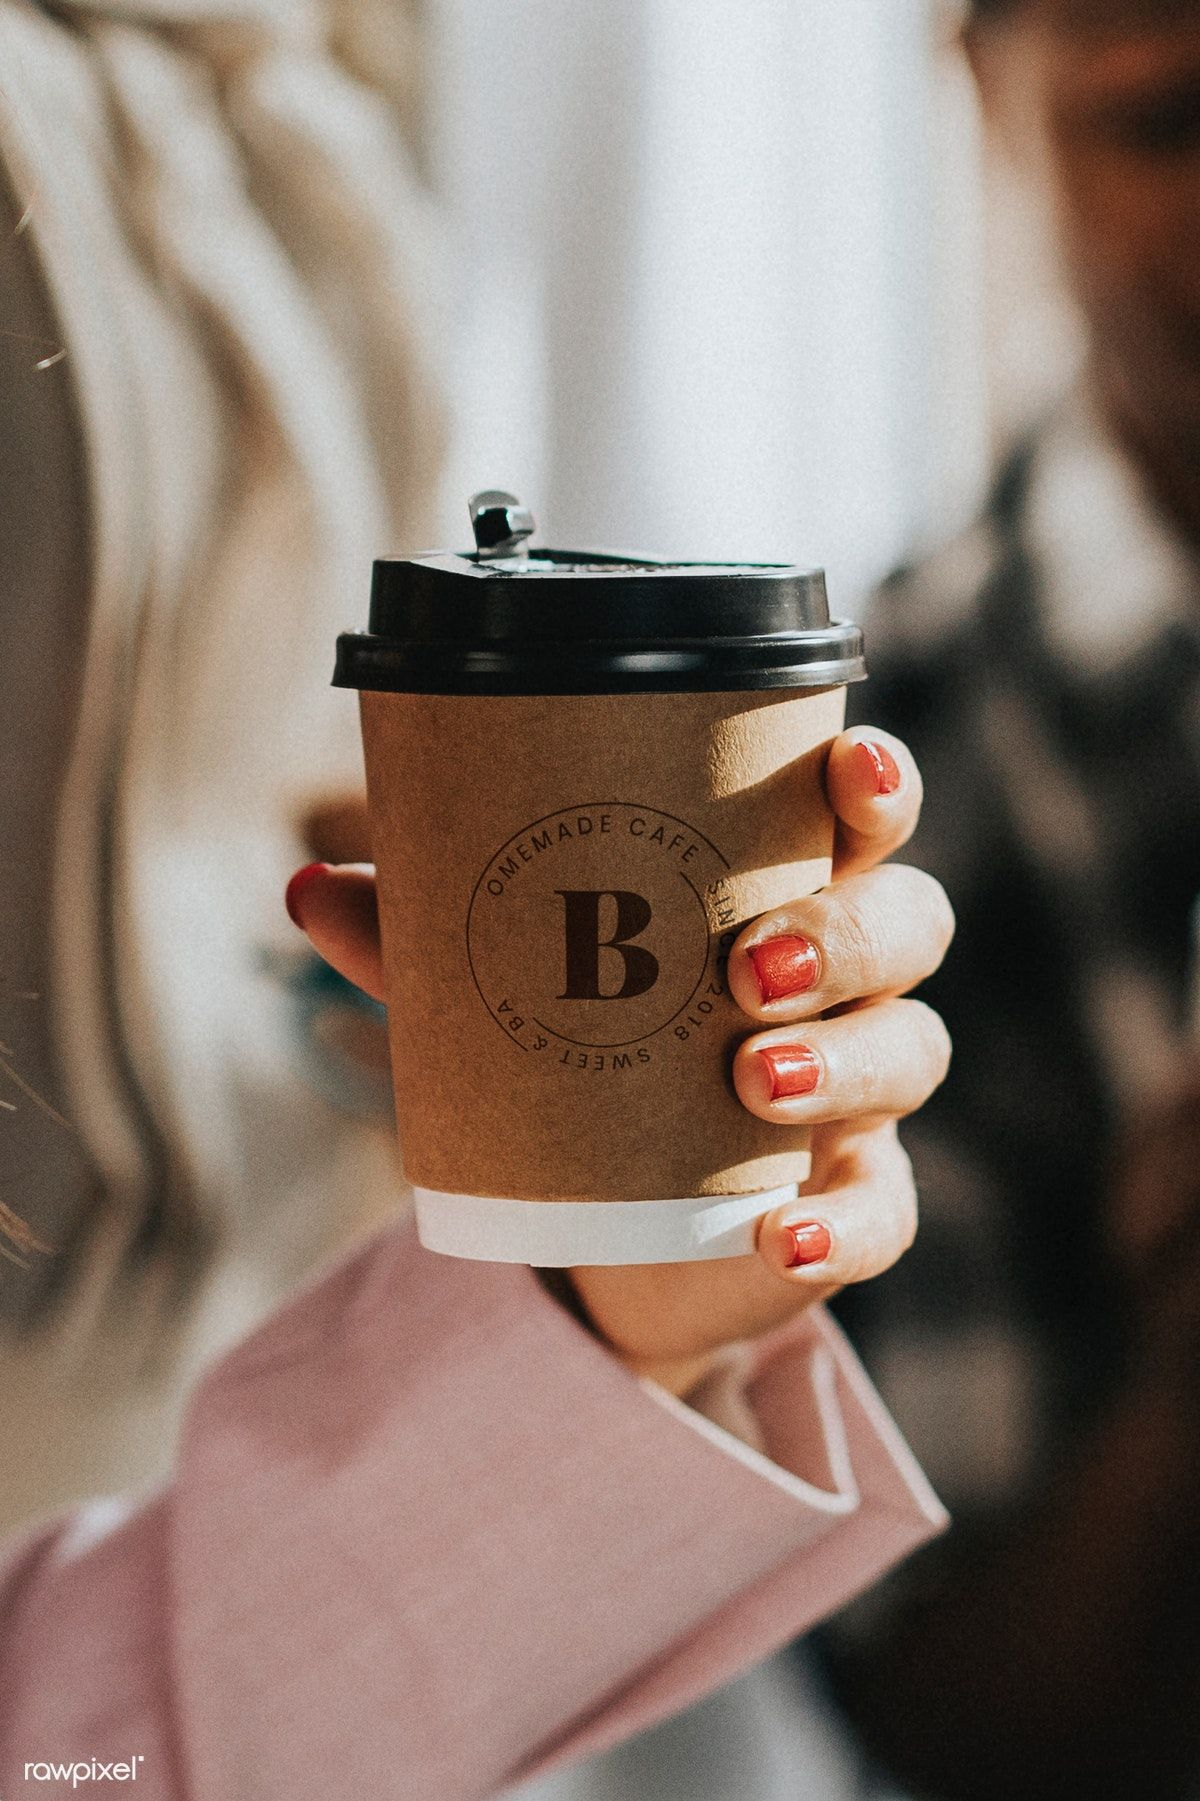 Download premium image of Female hand holding a coffee cup